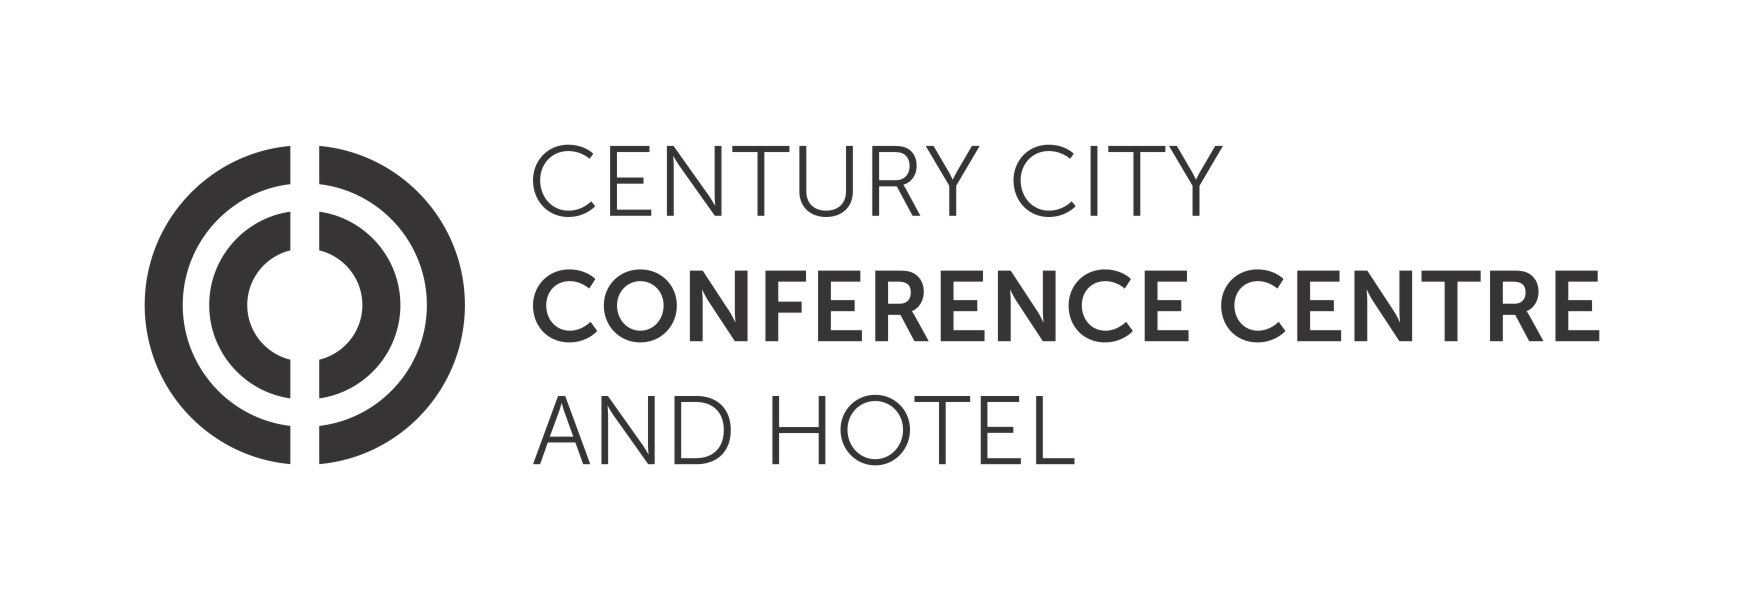 CENTURY CITY CONFERENCE CENTRE AND HOTEL LOGO LANDSCAPE